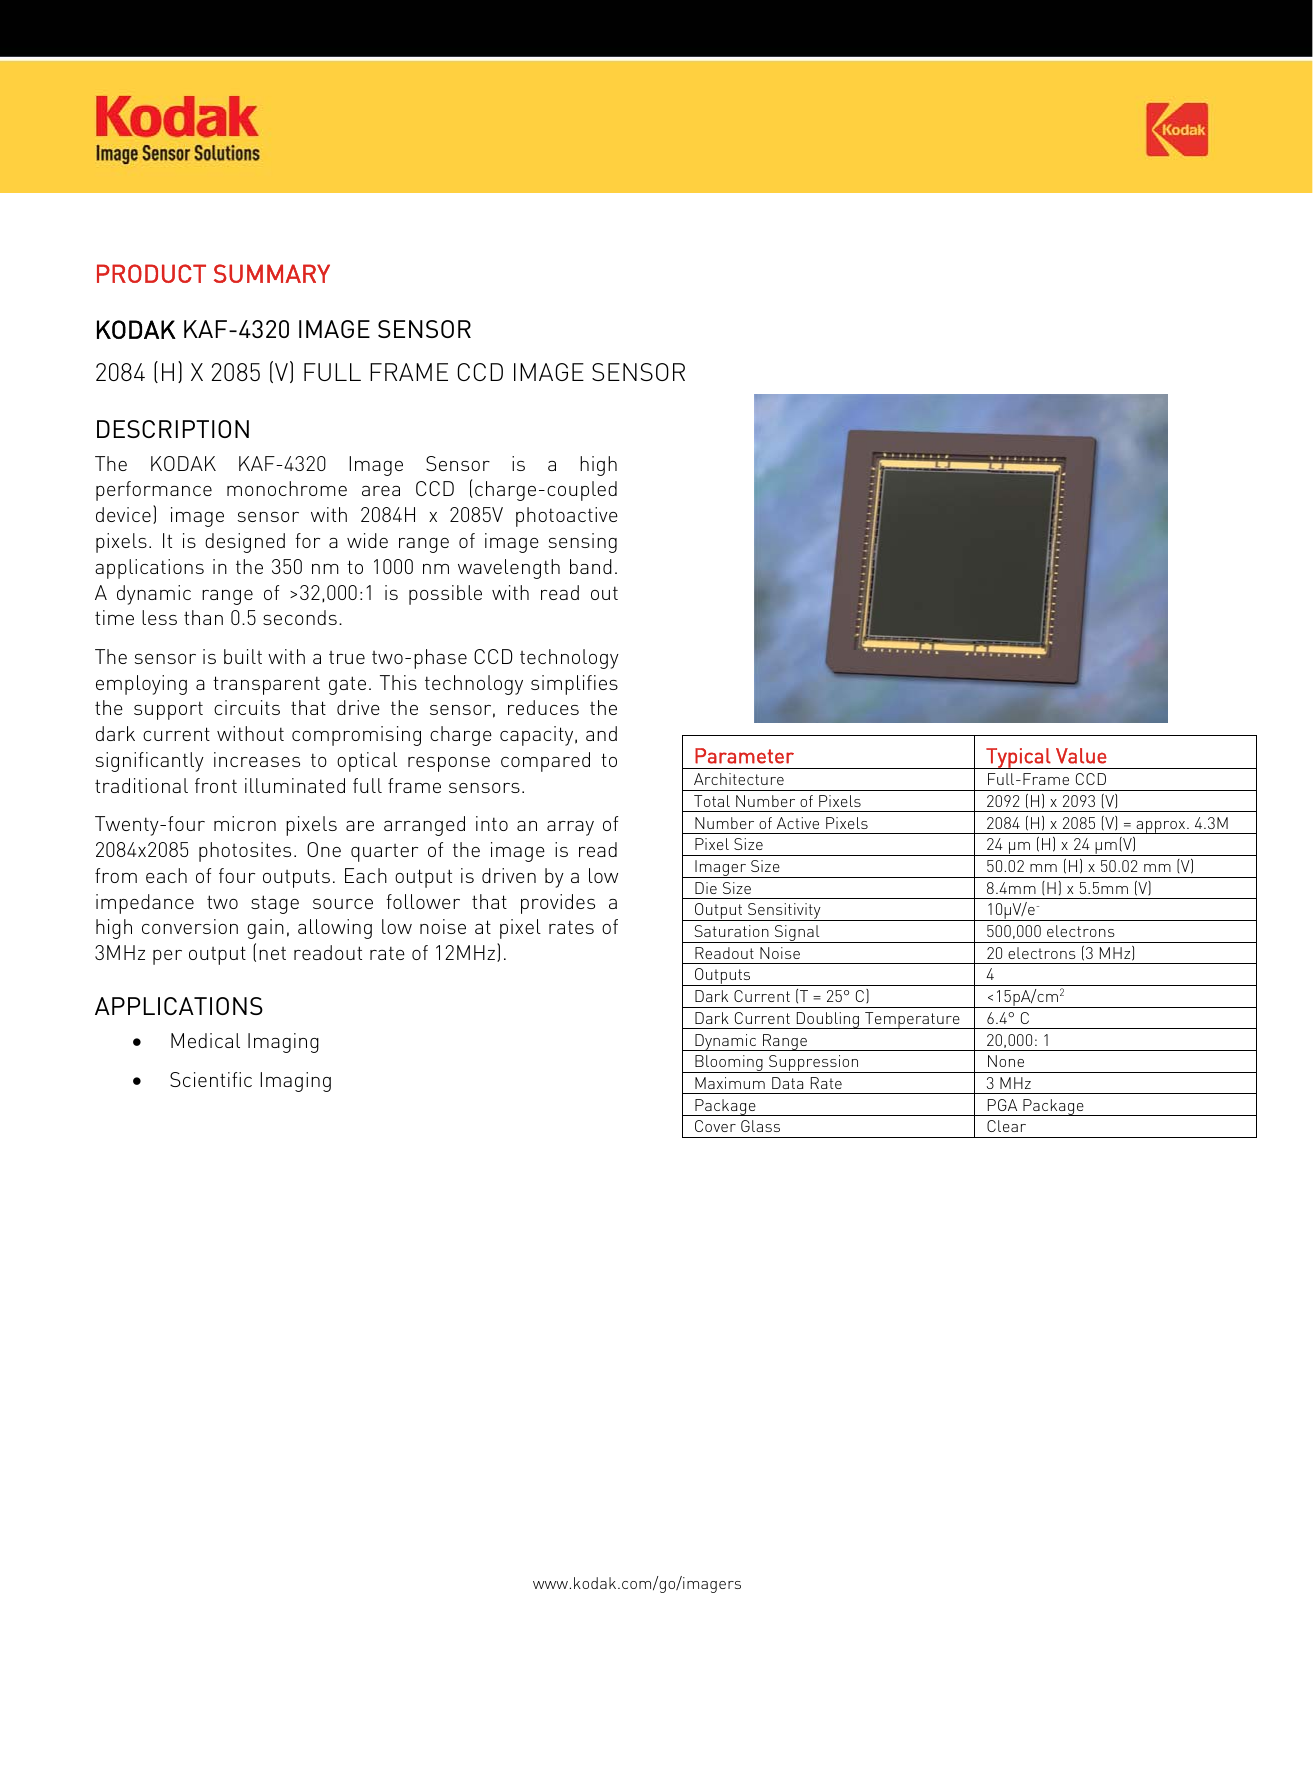 Kodak Image Sensor Kaf 4320 Users Manual APPLICATION NOTE